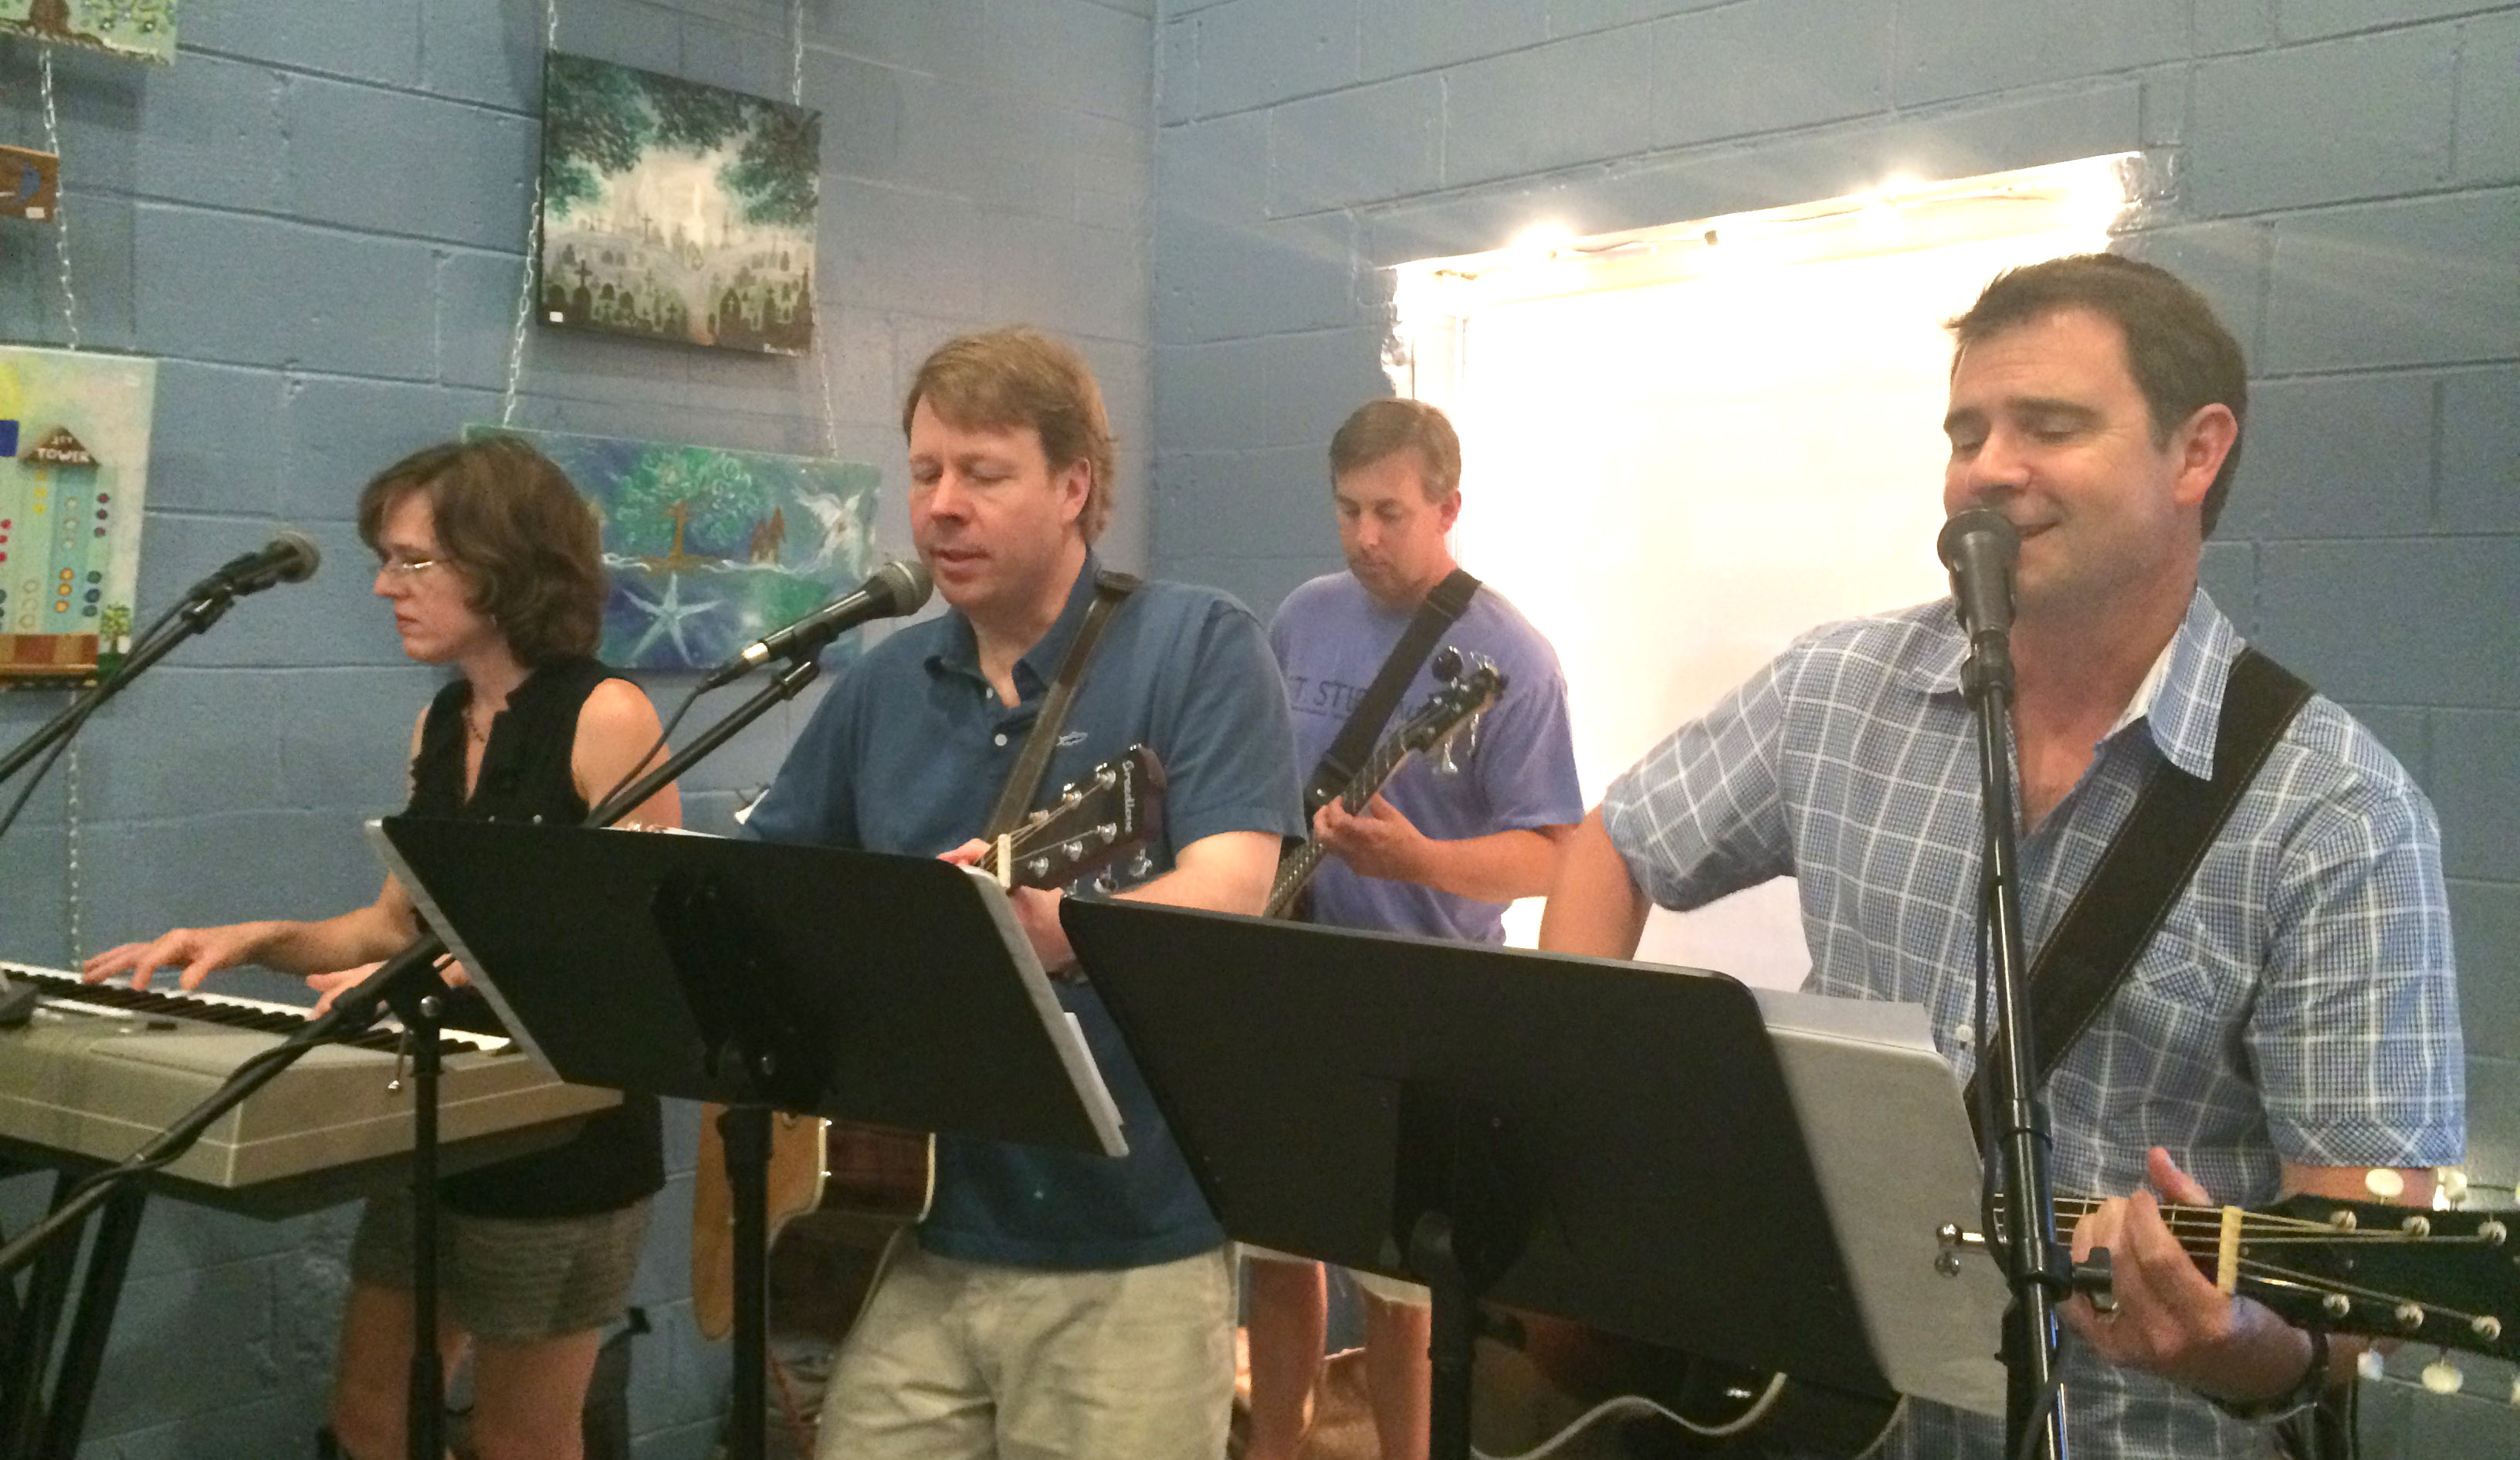 D.R. Dunlap is an adult who takes voice and guitar lessons at Mason Music.